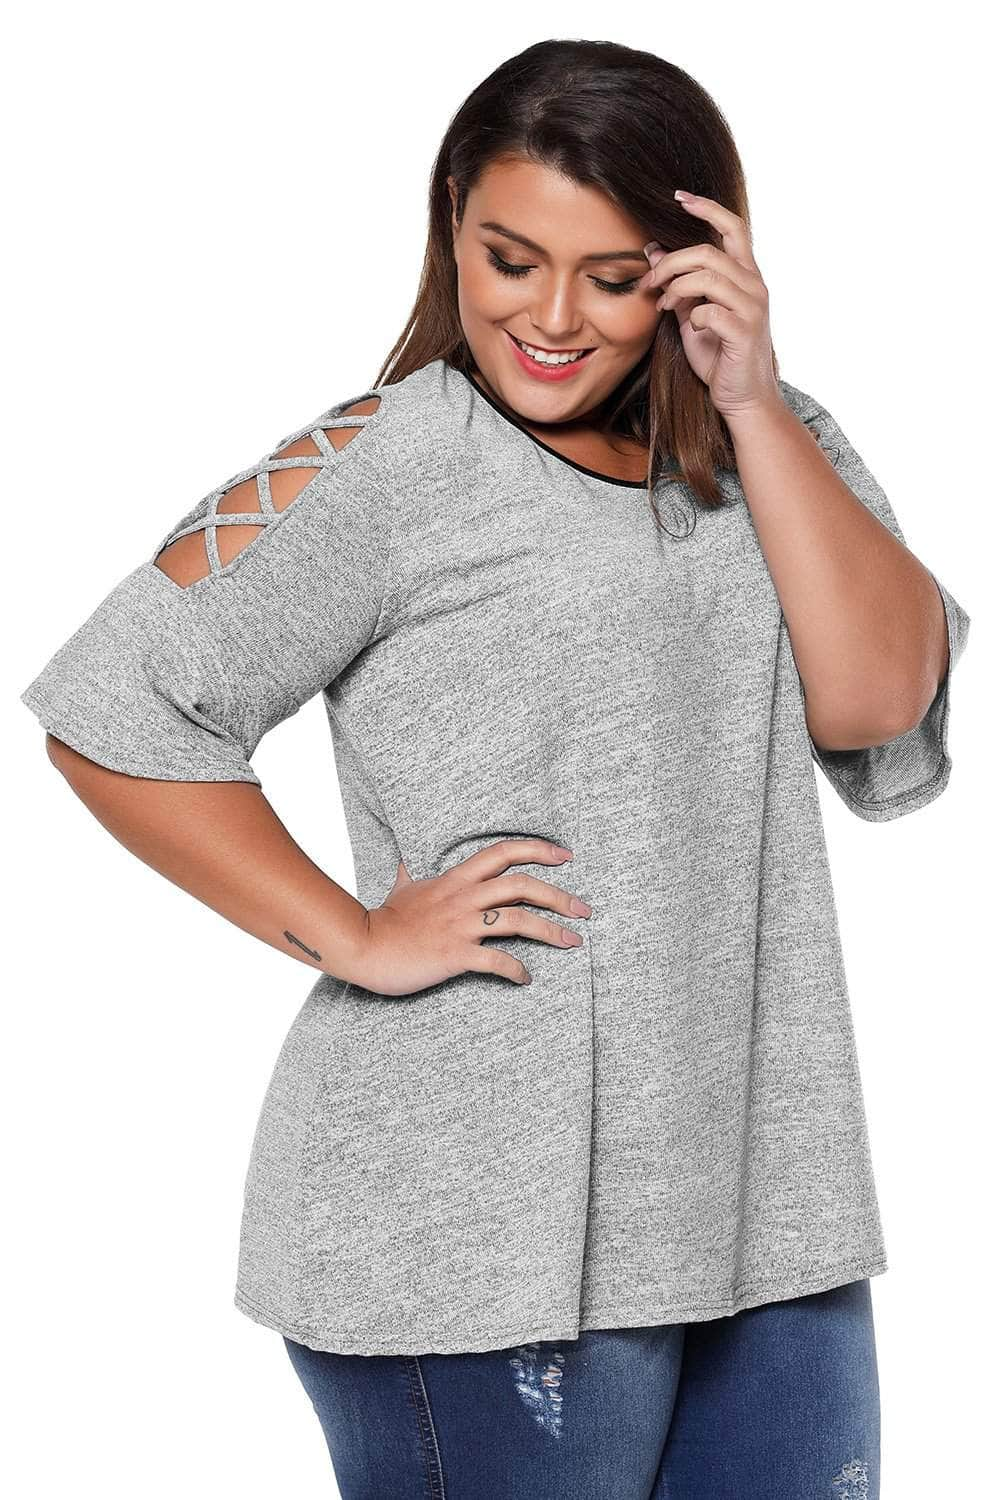 88d7fad3f7de6 Grey Plus Size Lace Up Cold Shoulder Top with Flute Sleeves by ...